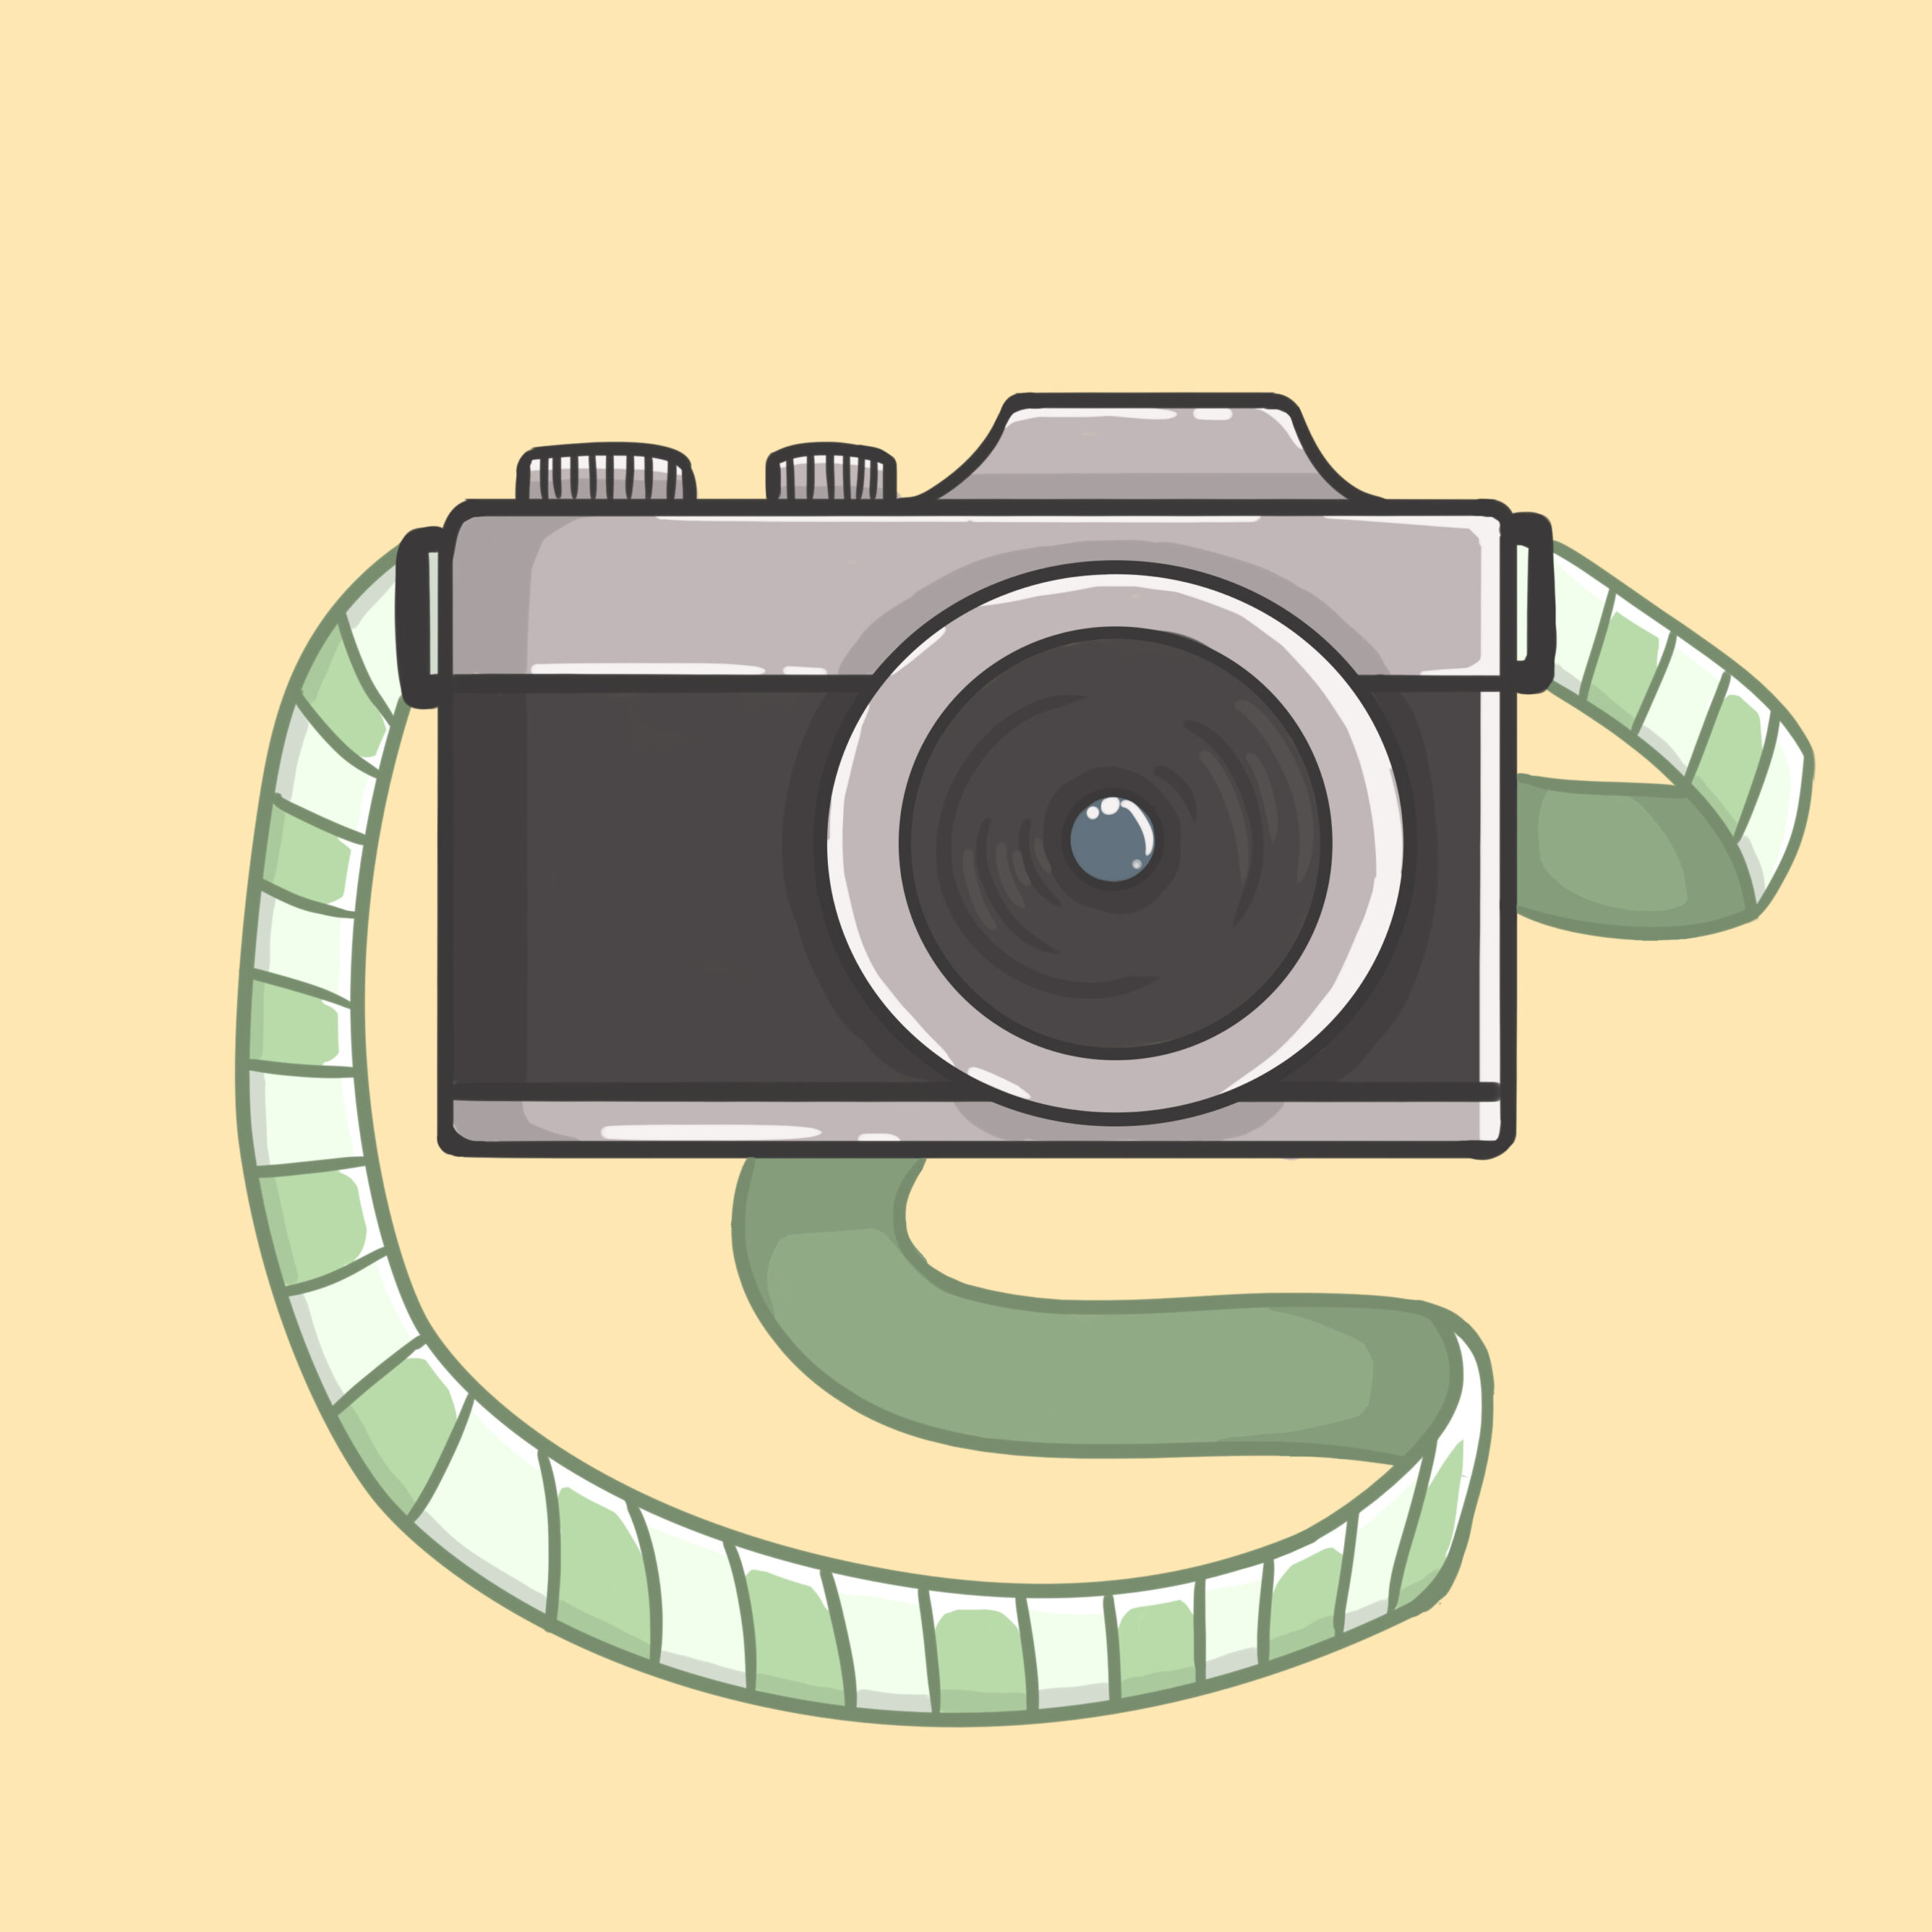 Camera illustration by Allison Christensen